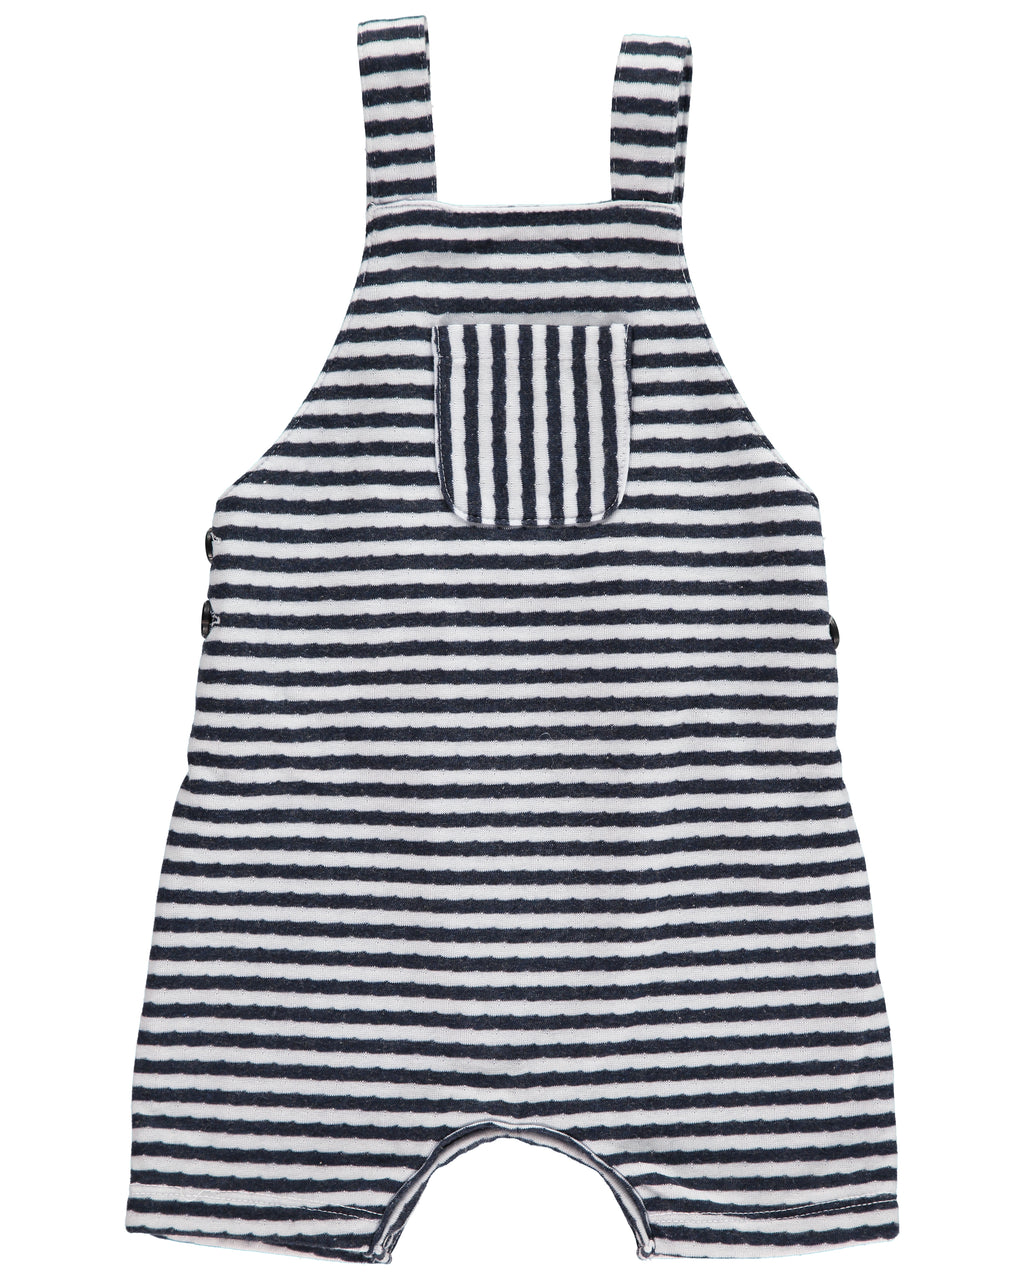 Navy Striped Shortie Overall